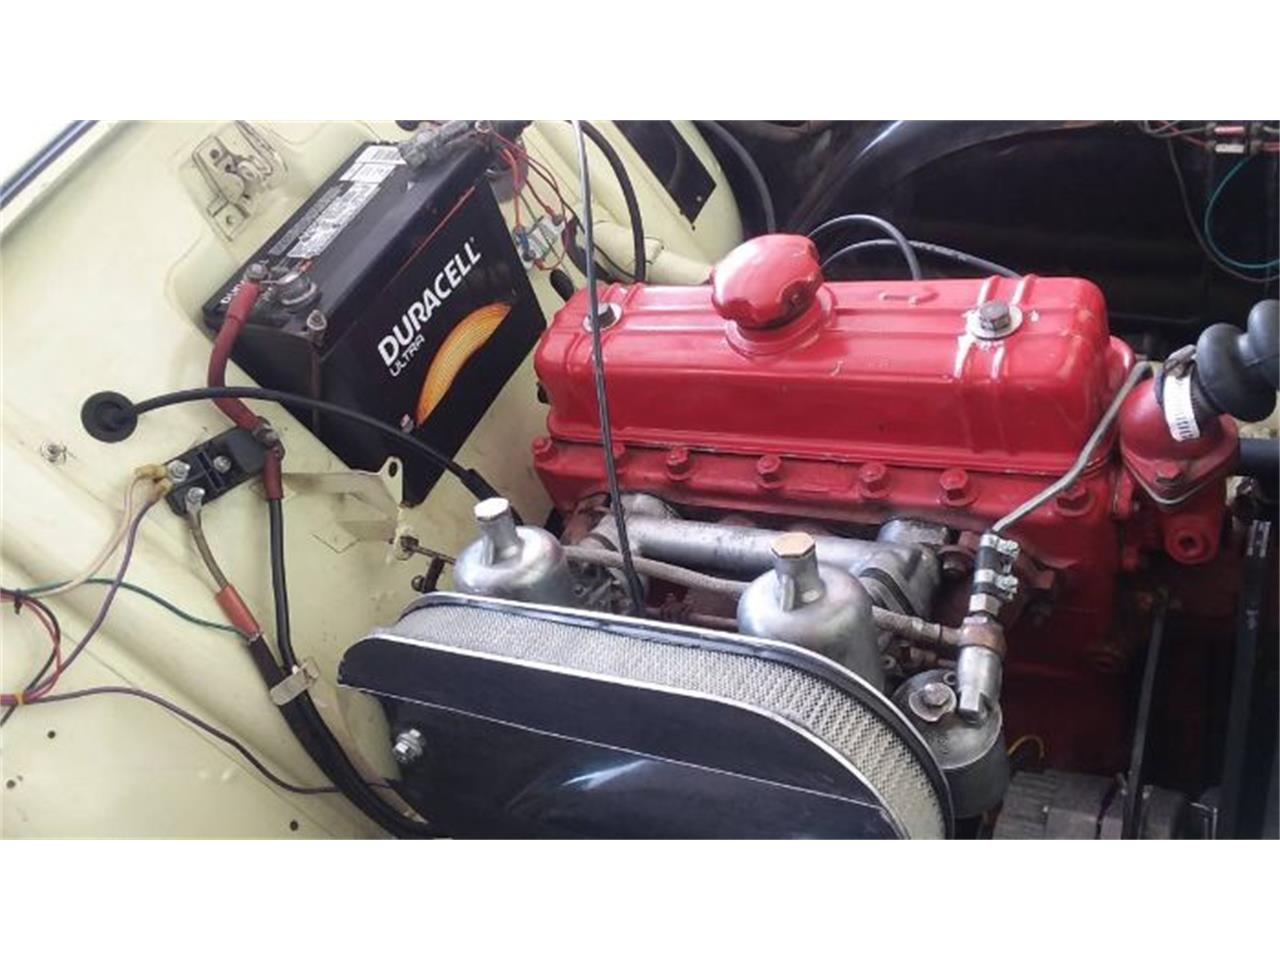 Large Picture of Classic '59 Volvo PV544 - $10,995.00 Offered by Classic Car Deals - Q2PL